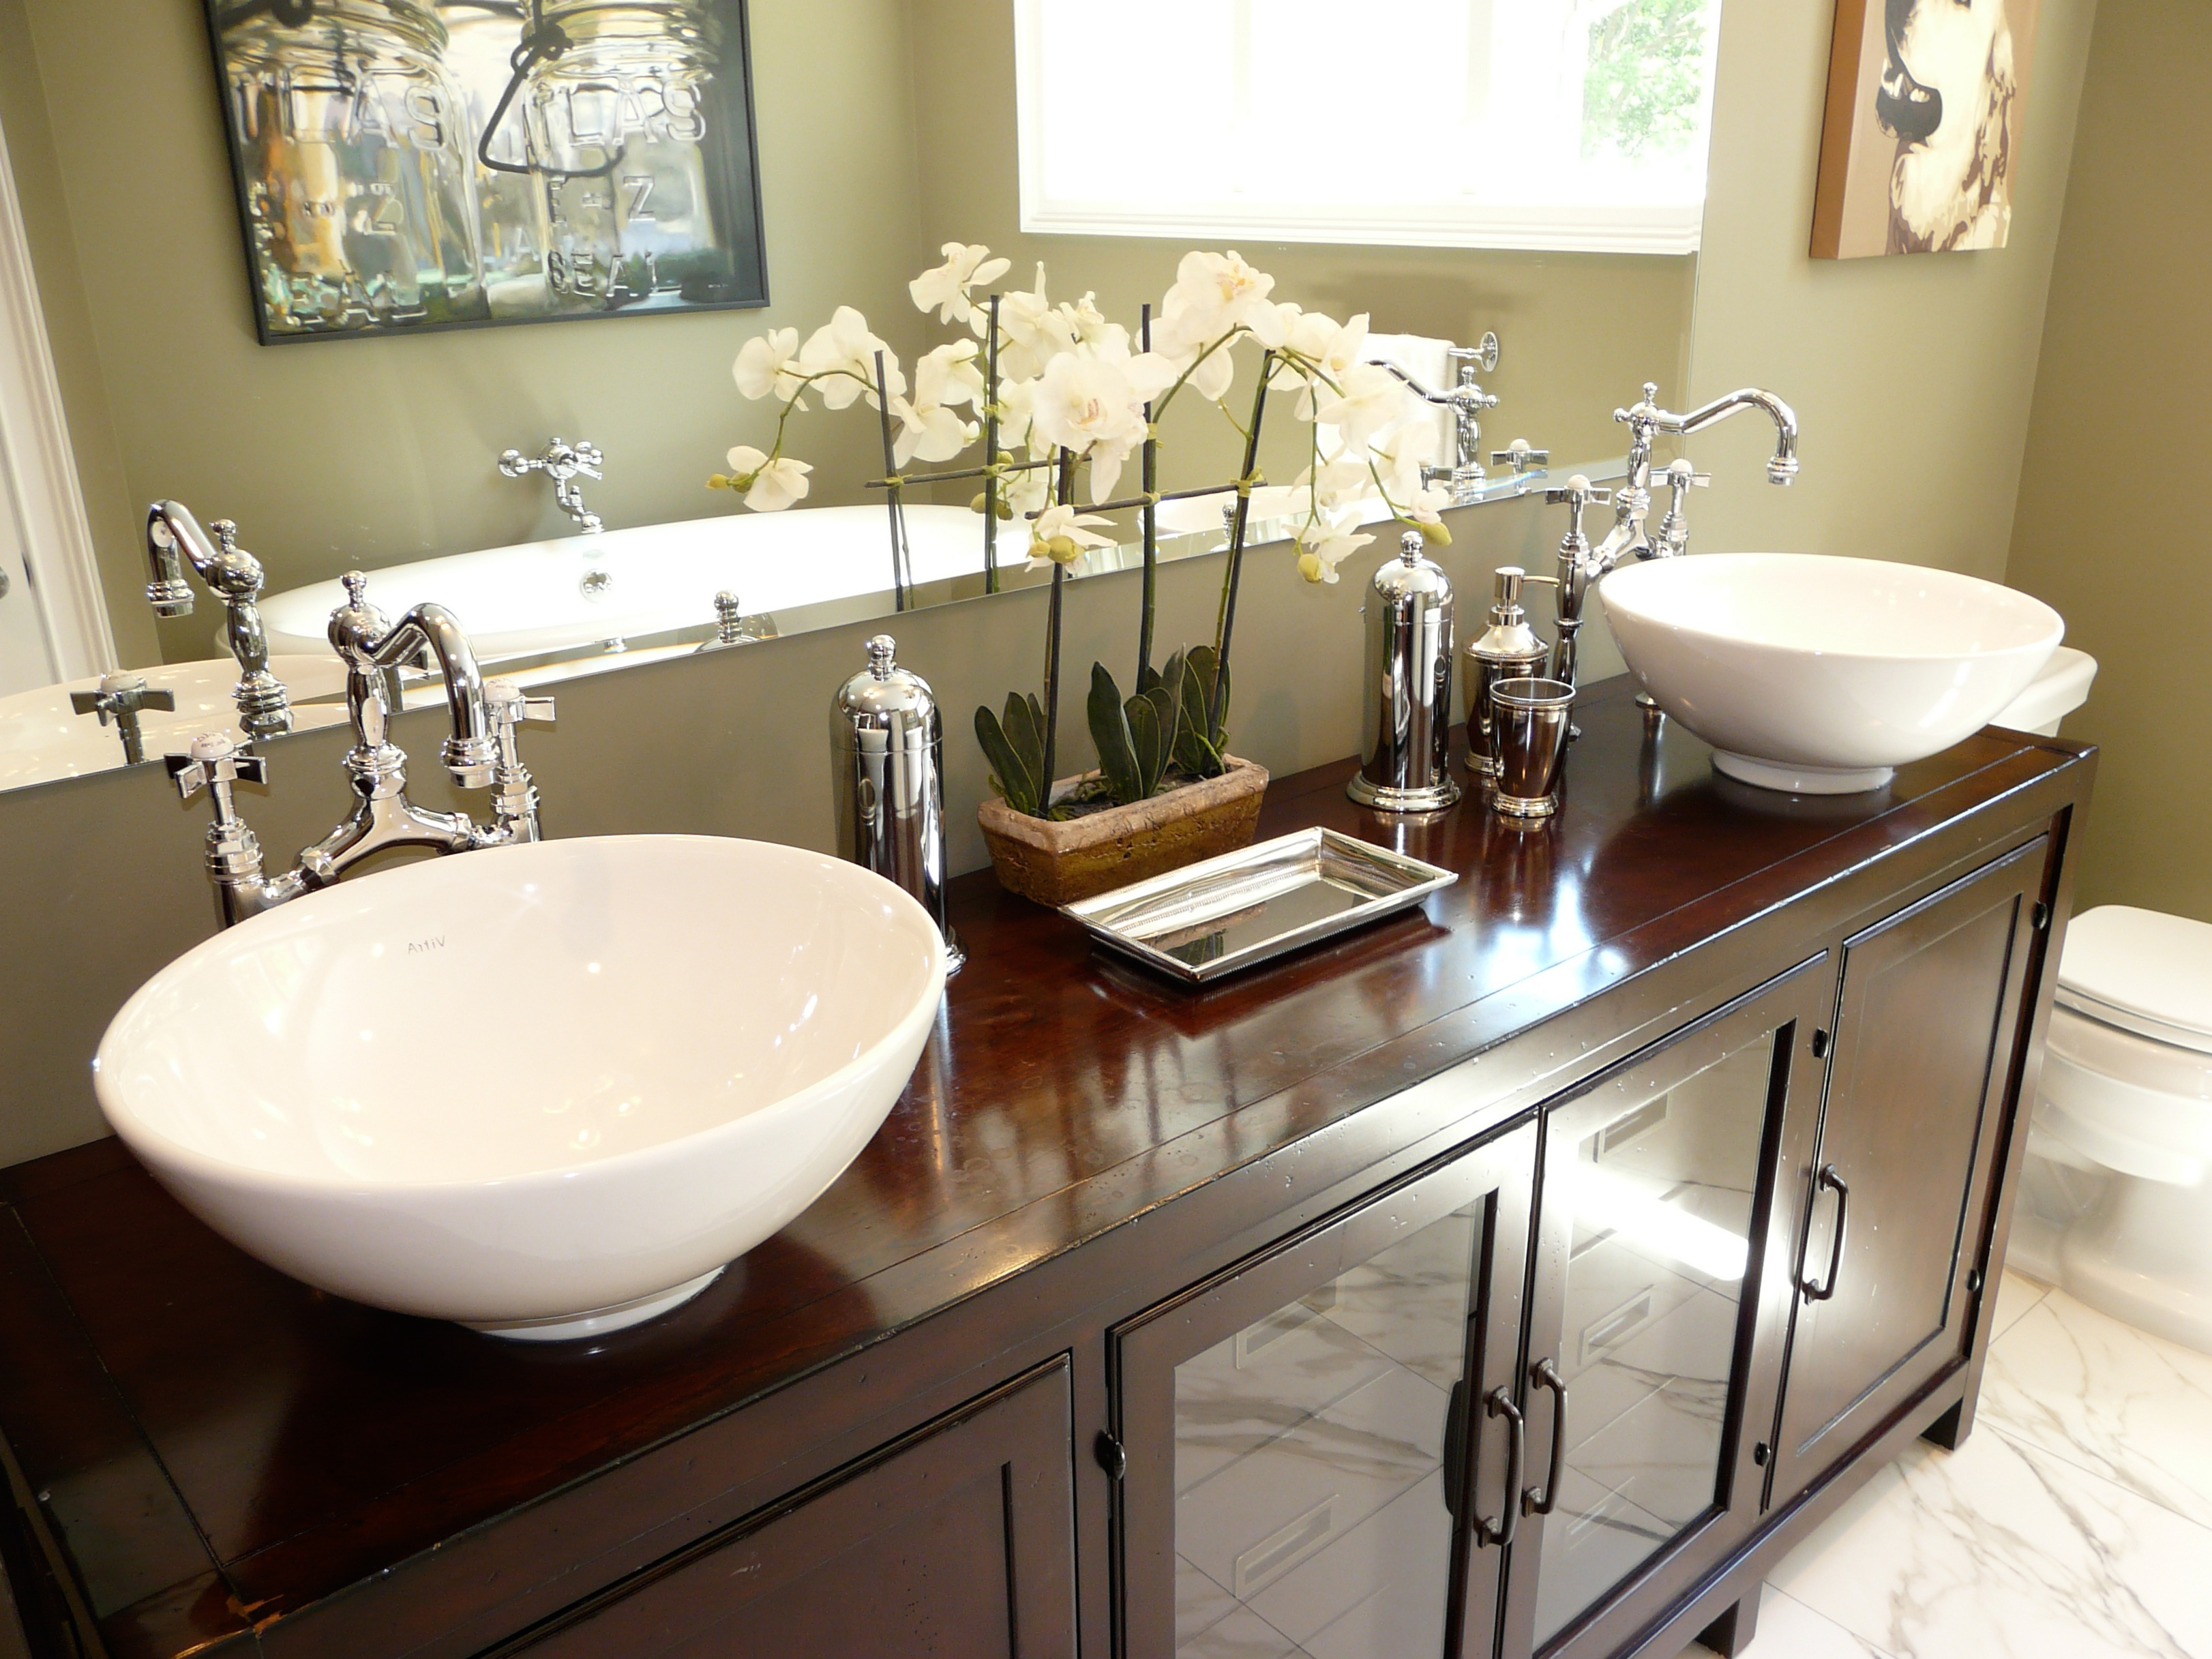 Modern Sophisticated Bathroom Accessories And Flowers (Image 10 of 14)